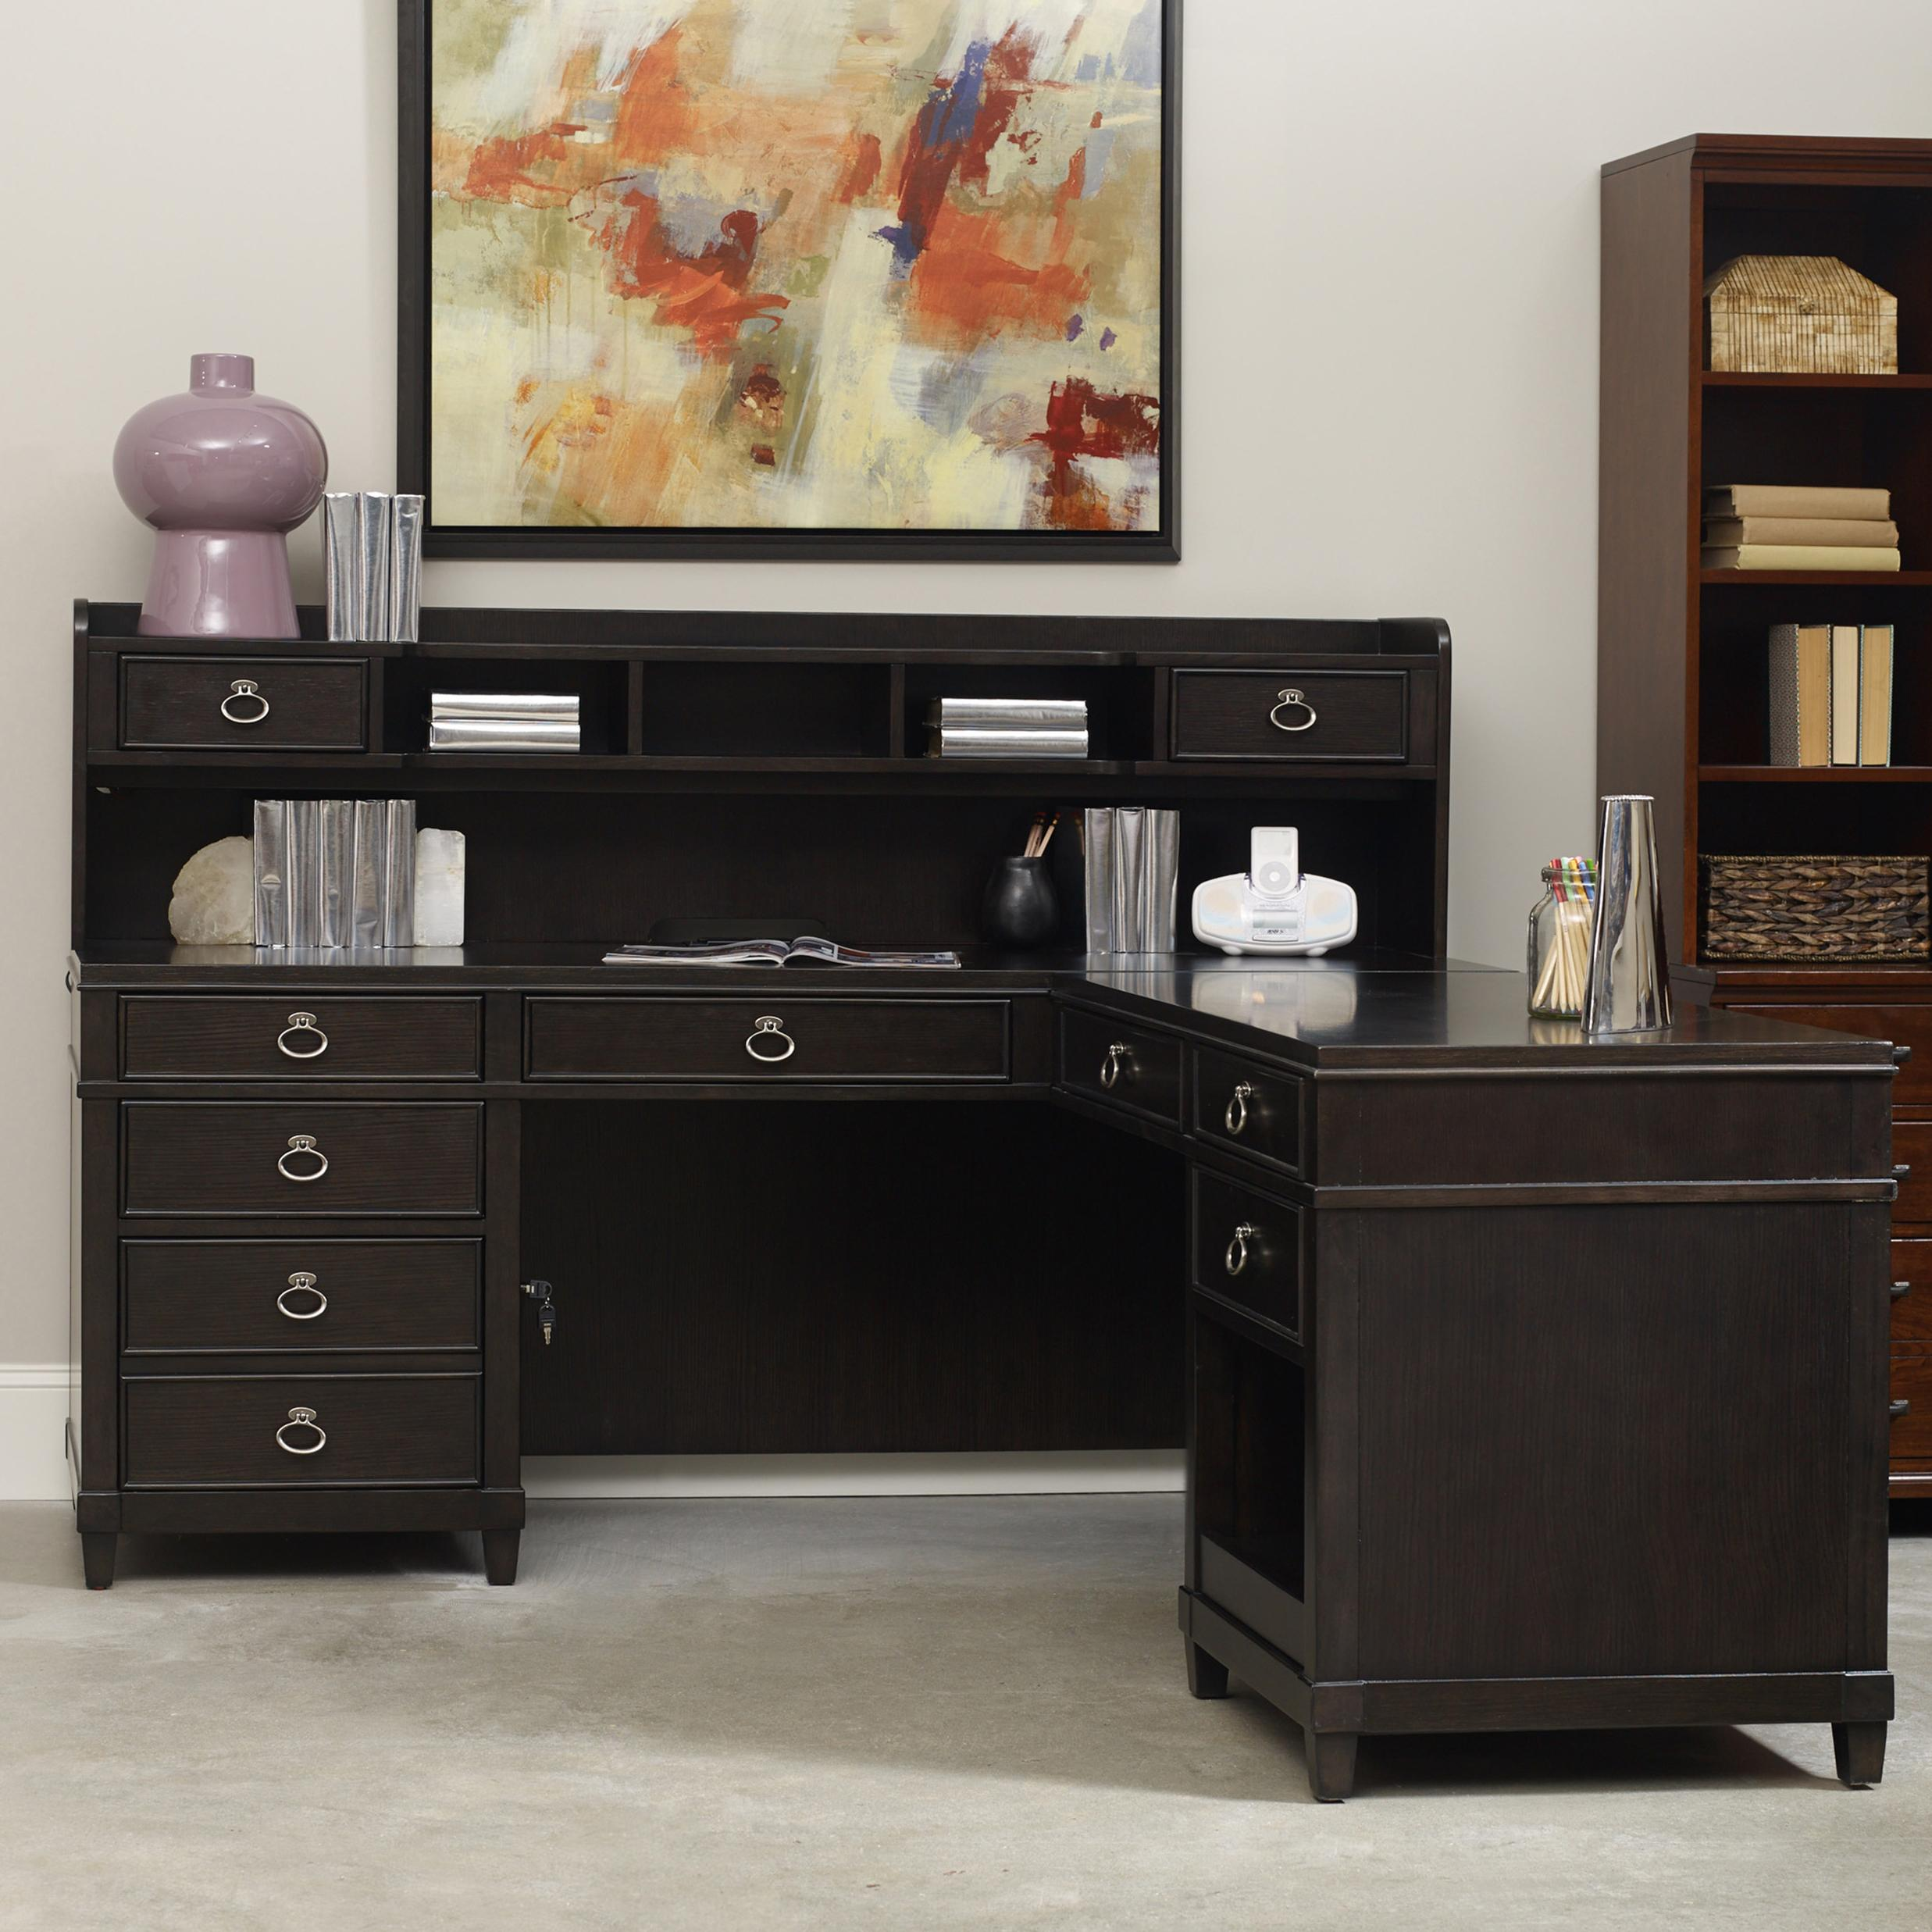 Hooker Furniture Kendrick L Desk with Hutch - Item Number: 1060-10479+78+367